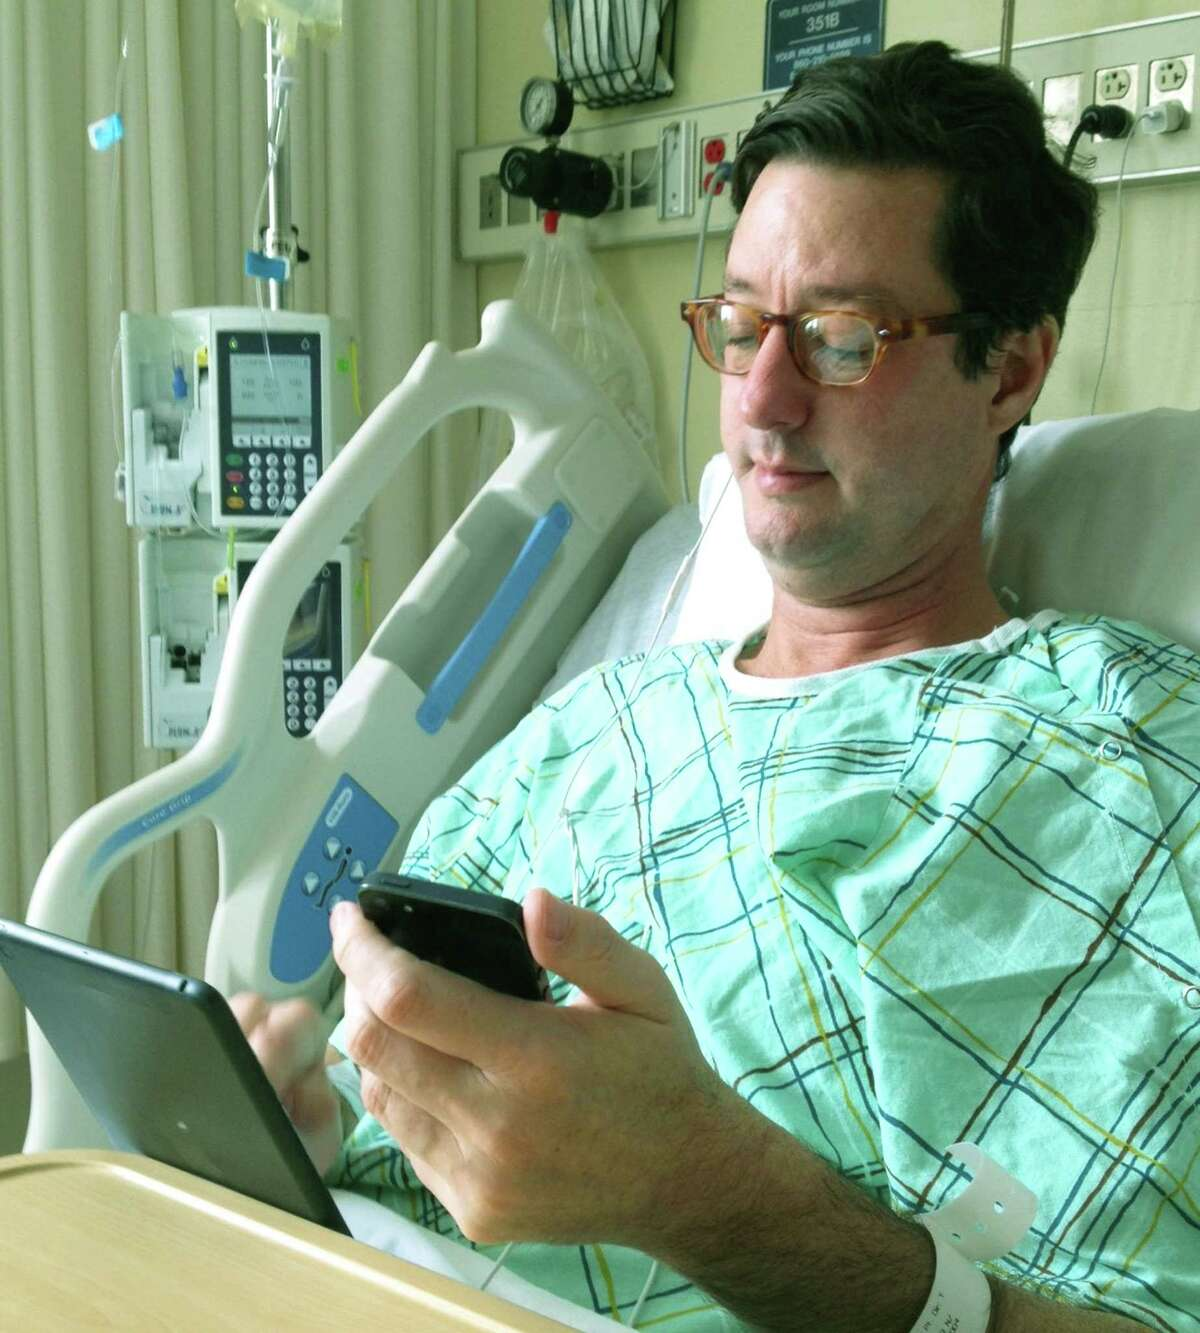 Vigilant about his town's well being even while bed-ridden the morning after undergoing an emergency appendectomy at New Milford Hospital, First Selectman Clay Cope employs his iPad and iPhone Monday to coordinate Sherman's preparedness for the snowstorm about to arrive. Jan. 26, 2015